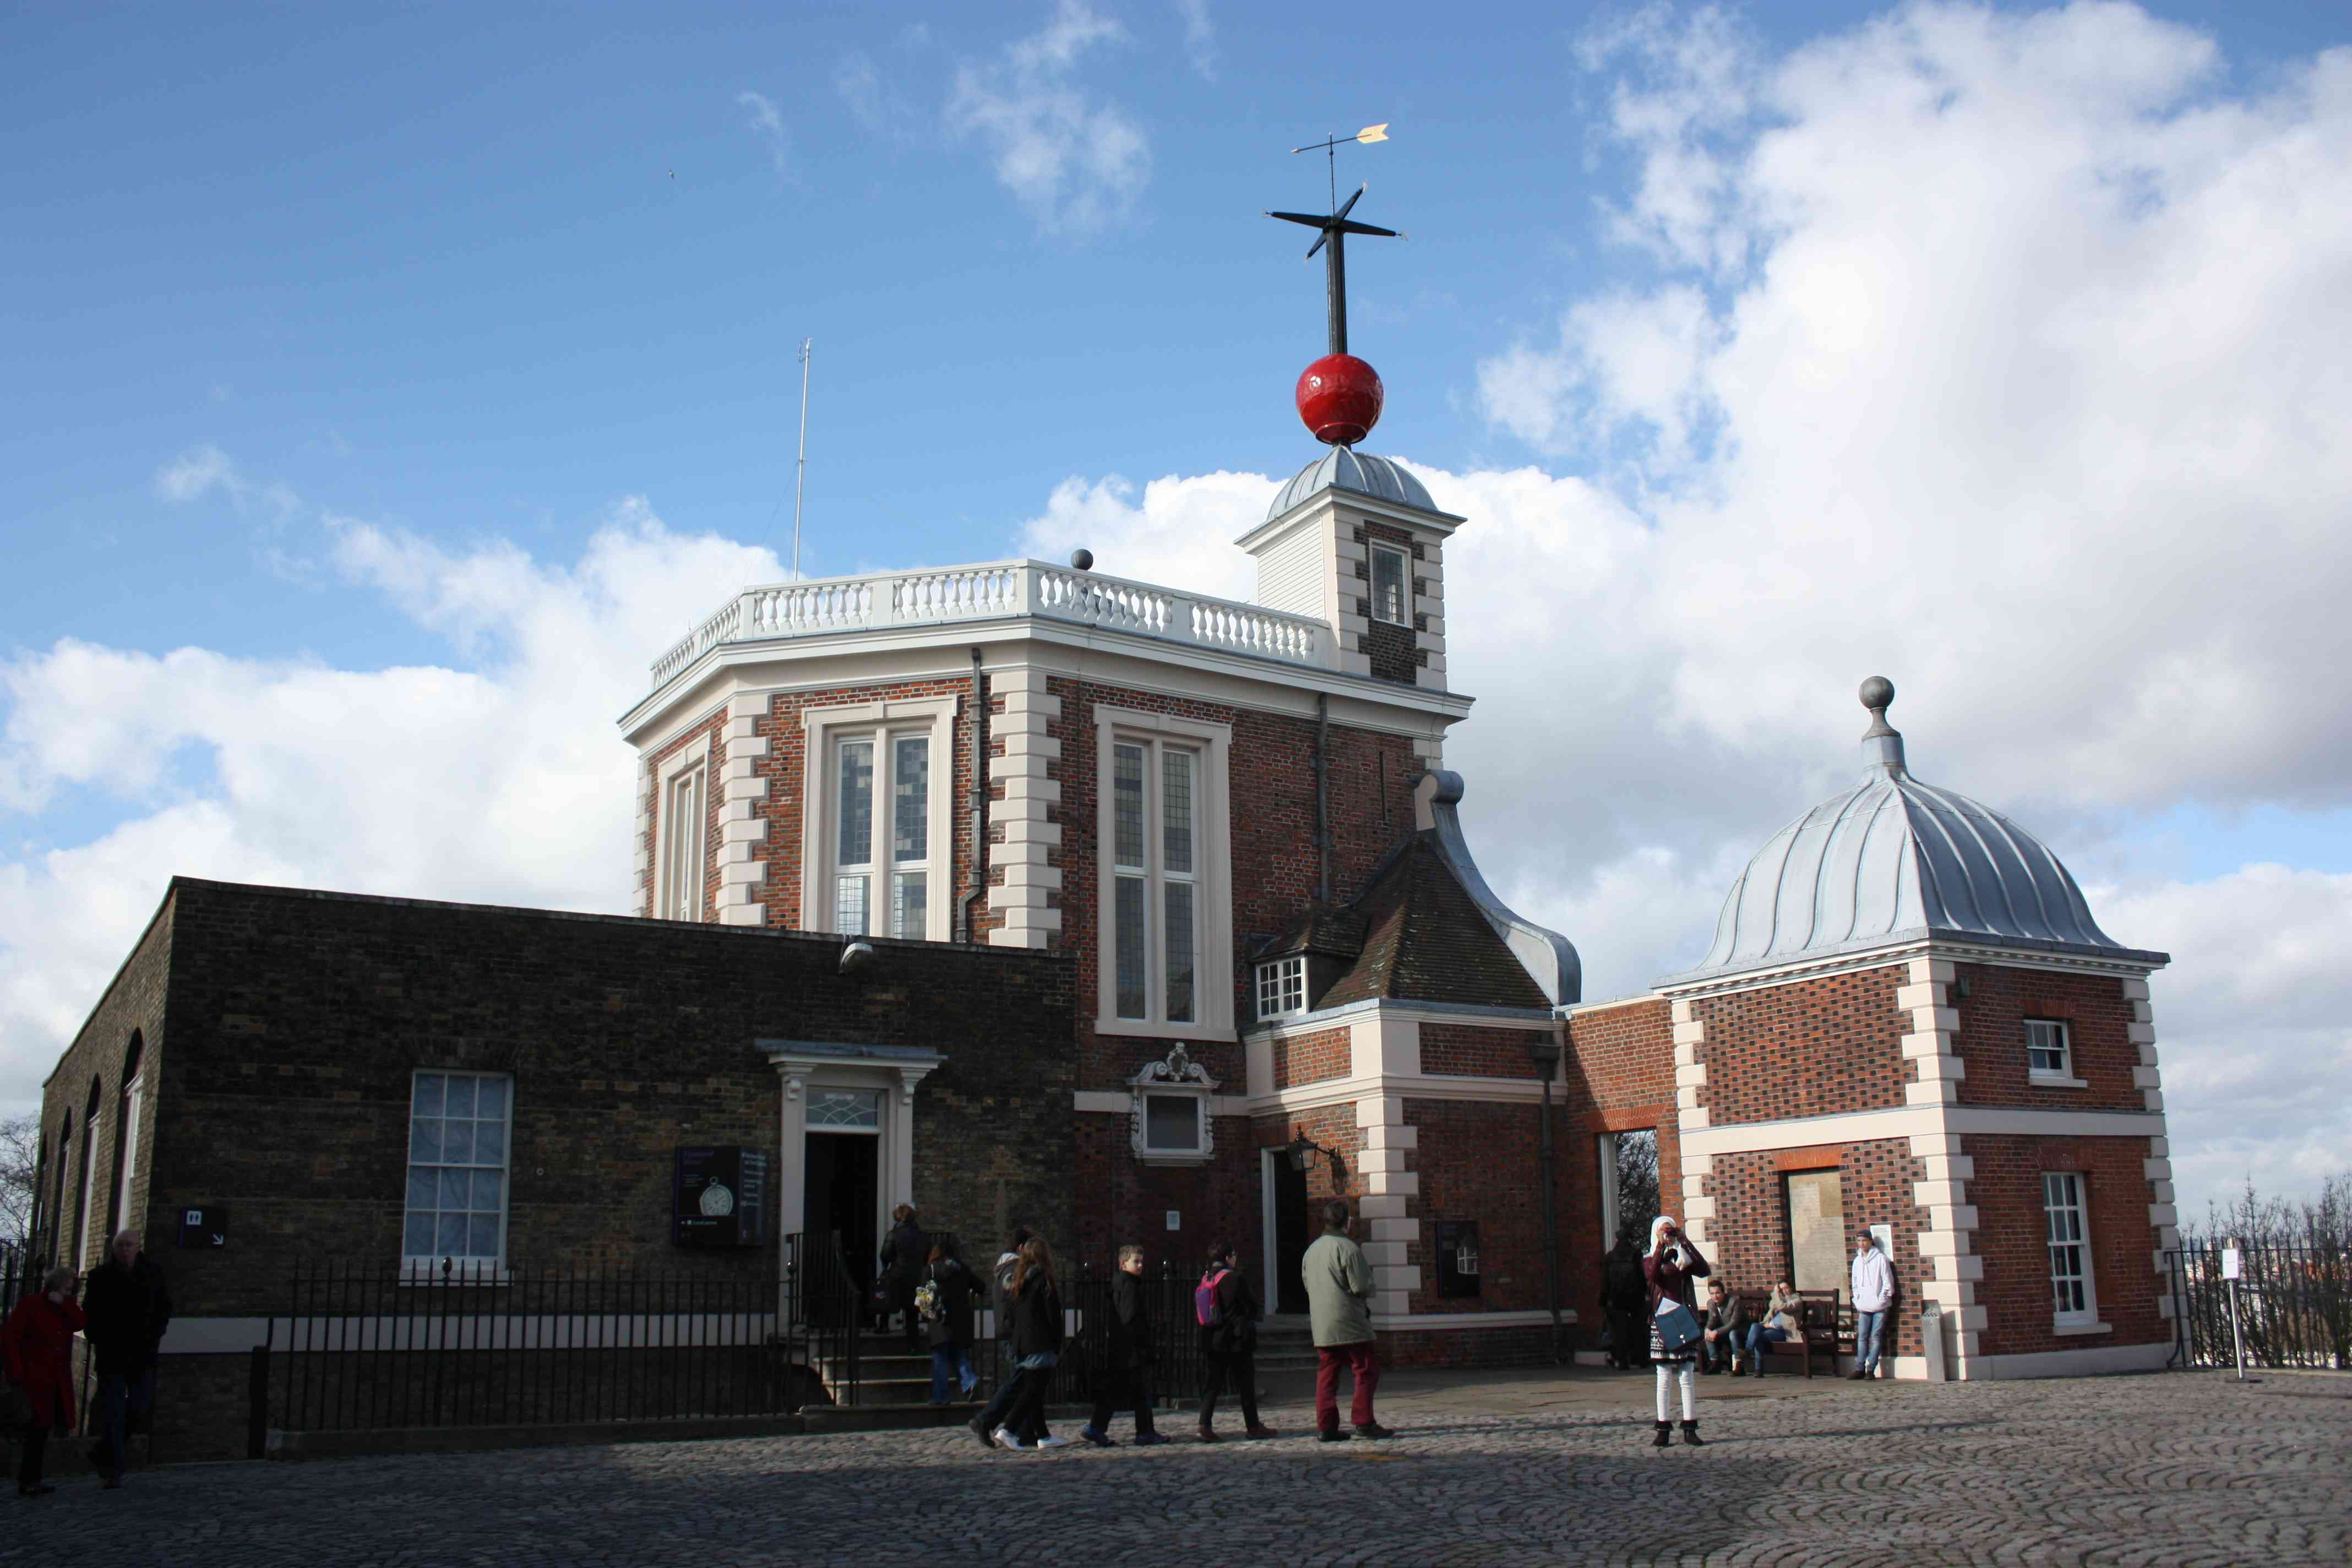 Tourists gather outside of the Royal Observatory, Greenwich in England